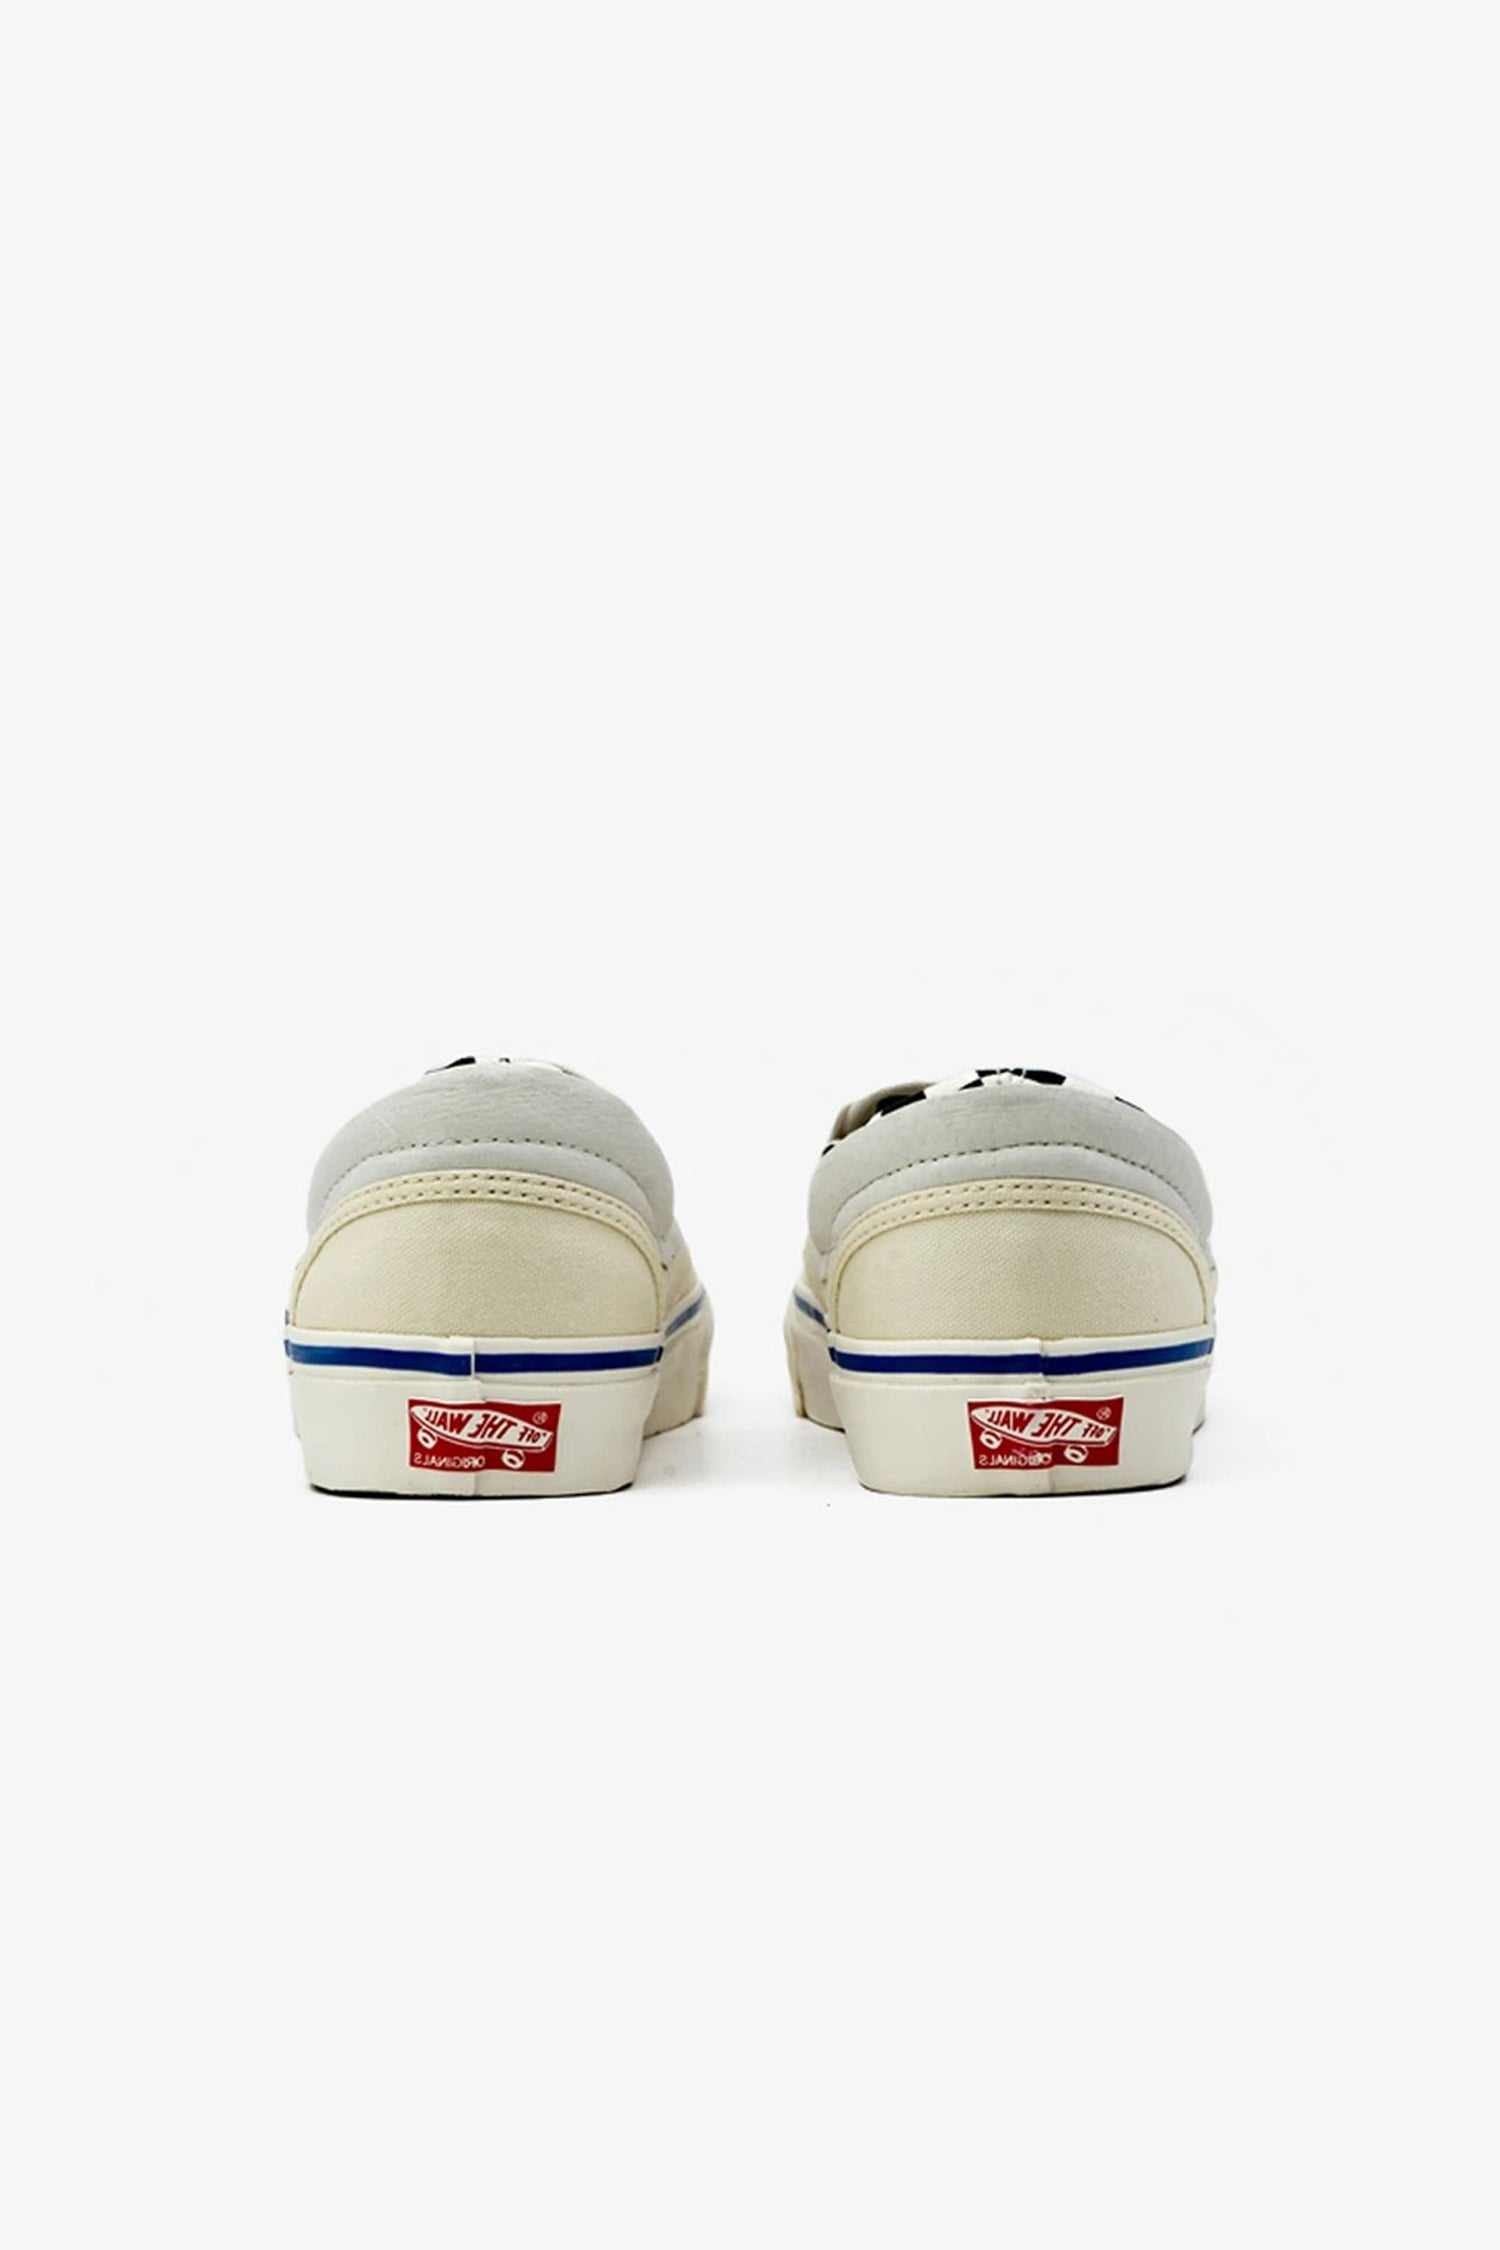 Selectshop FRAME - VANS Vault UA OG Classic Slip-On LX Inside Out Footwear Dubai